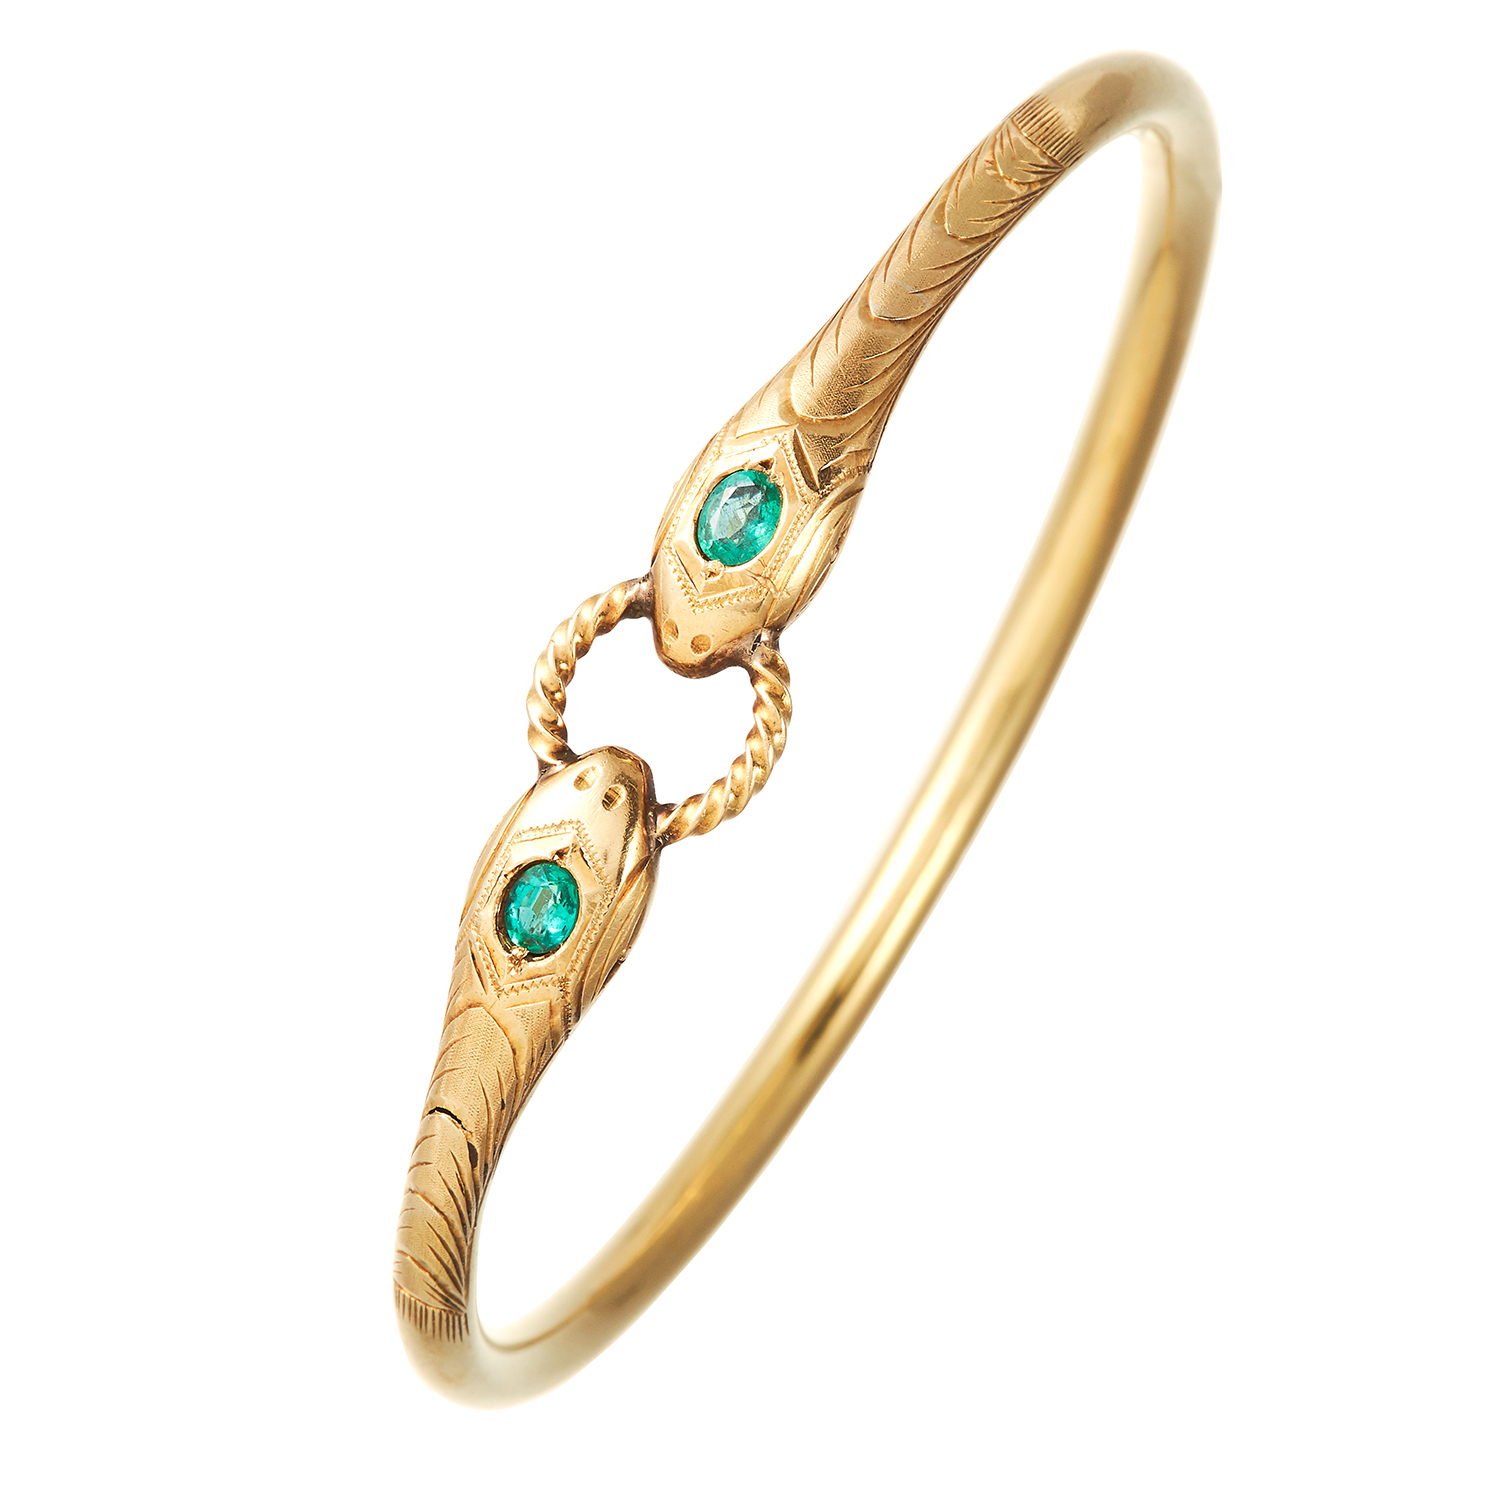 Los 324 - AN ANTIQUE EMERALD SNAKE BANGLE, 19TH CENTURY in high carat yellow gold, the snakes' heads